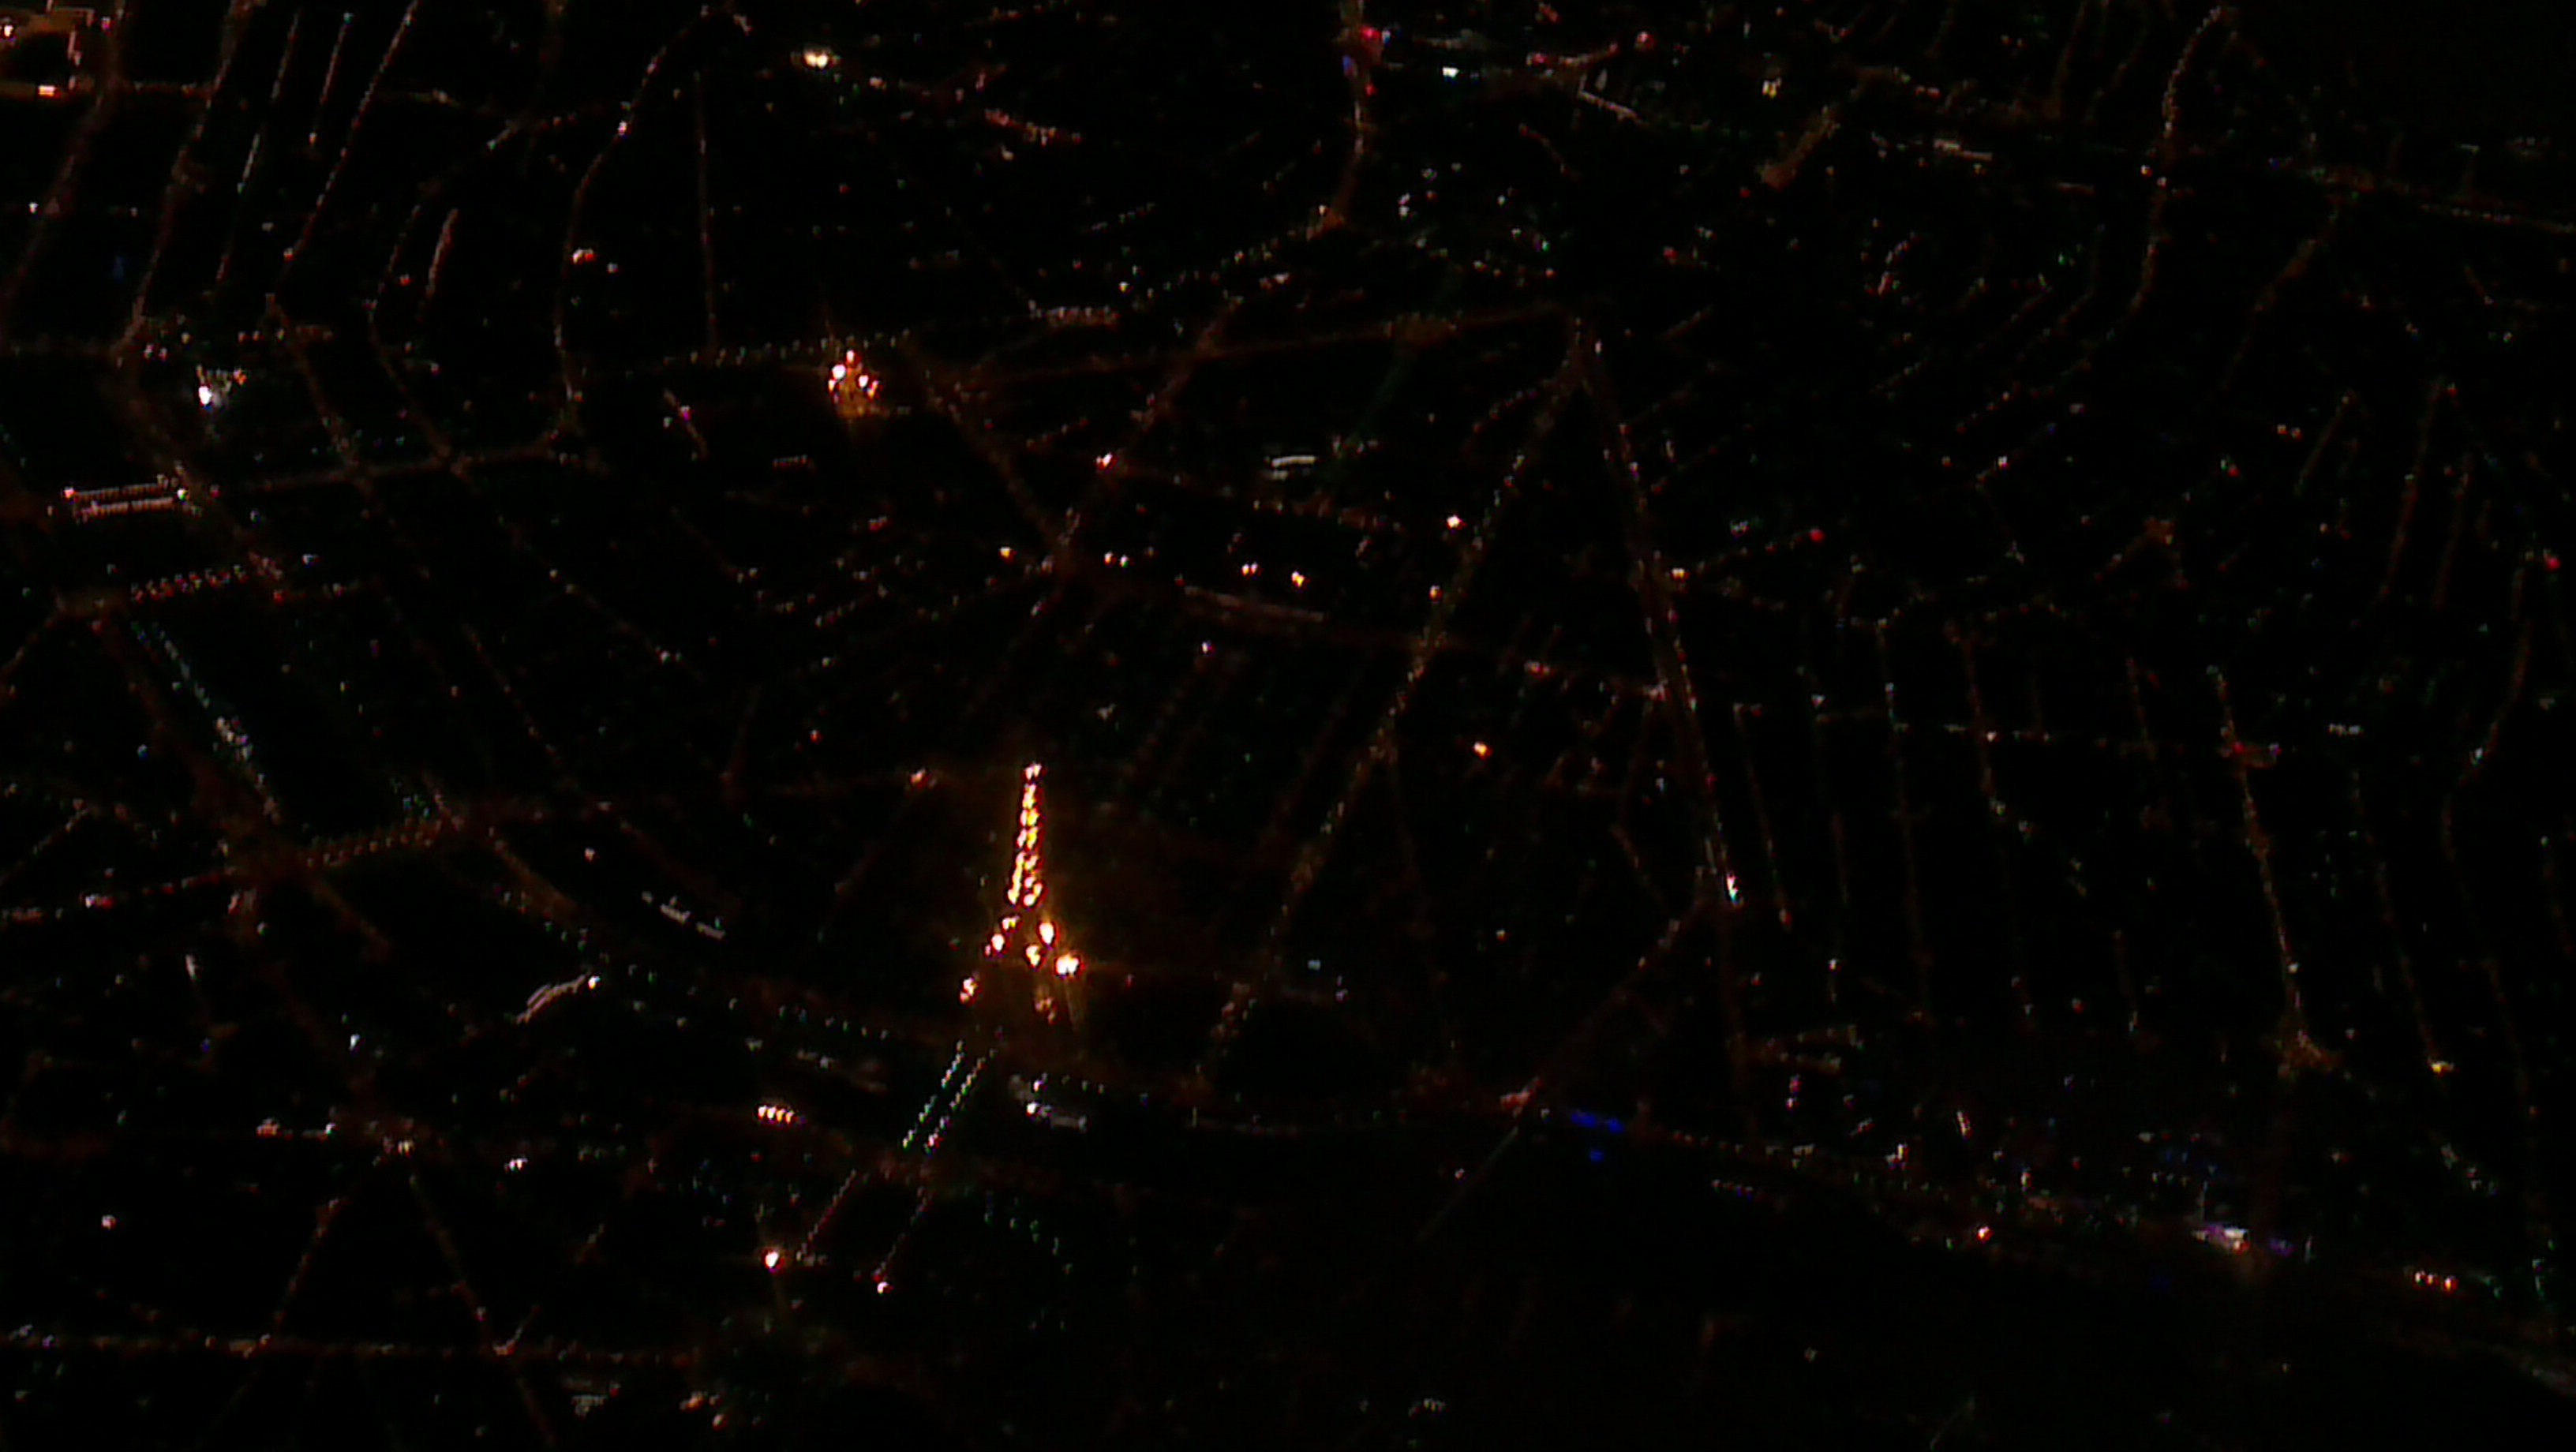 Paris by night - the Eiffel Tower